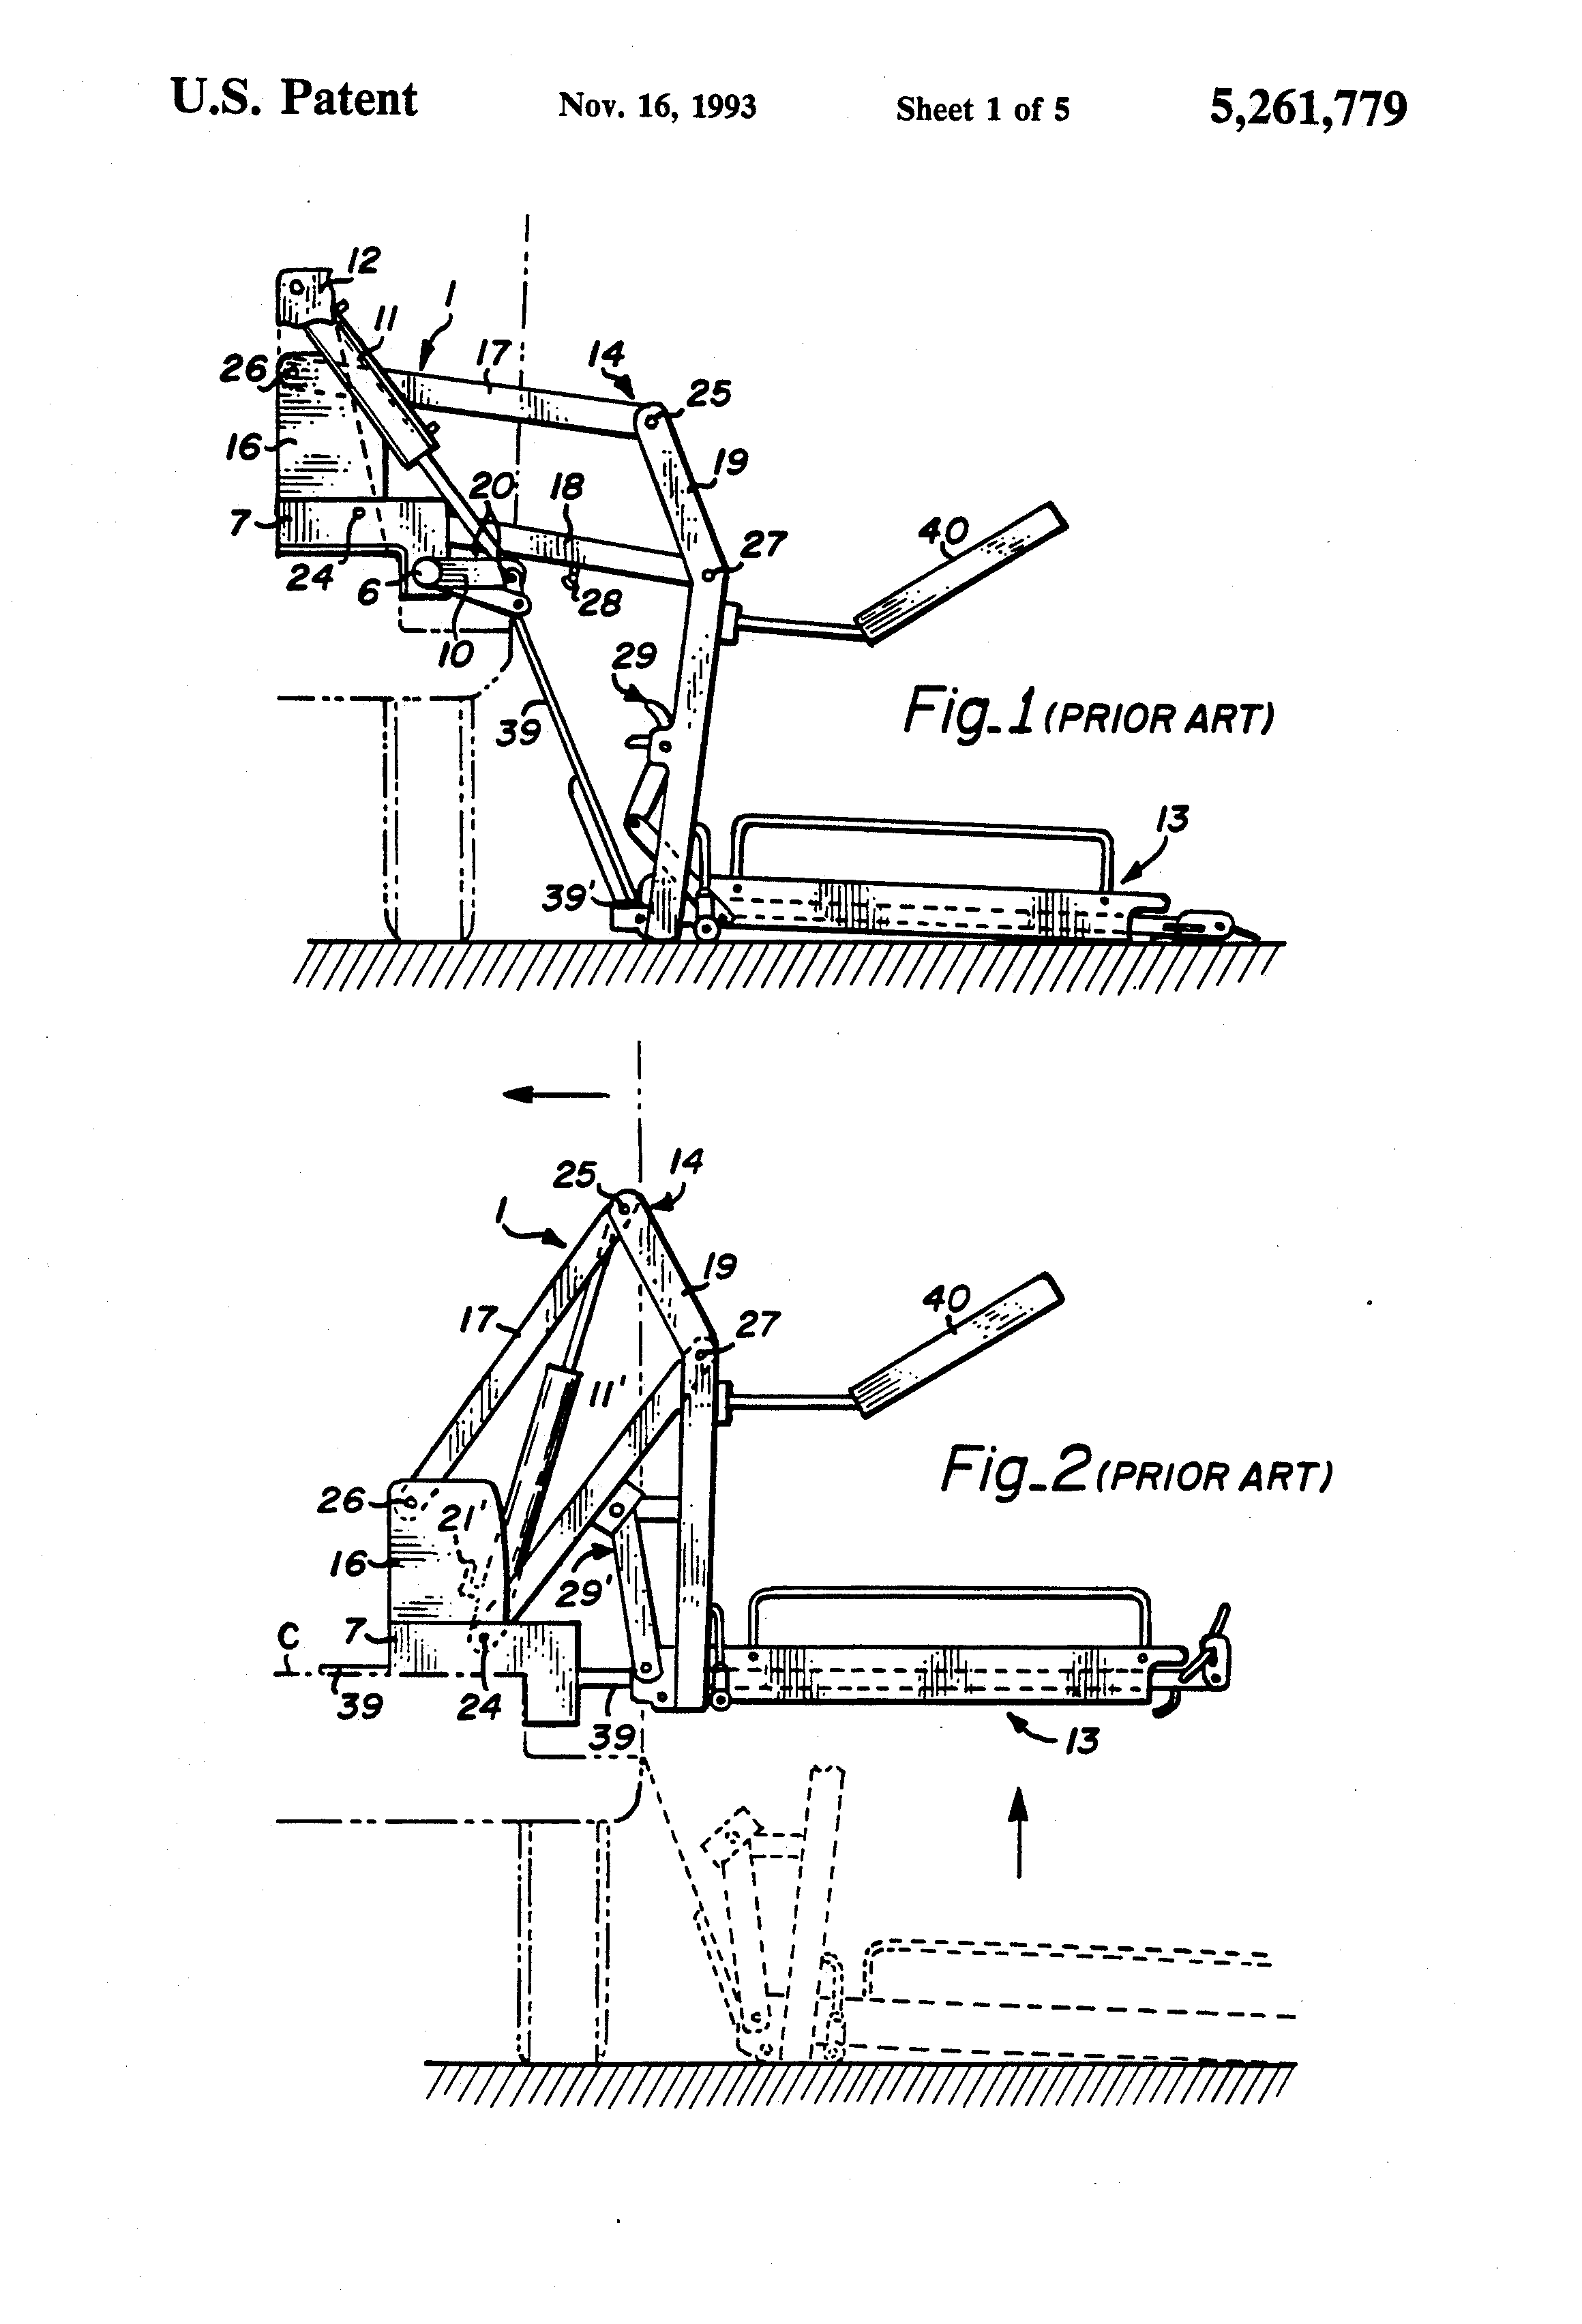 Arm Lift Wiring Diagram Real Rotary Switch Patent Us5261779 Dual Hydraulic Parallelogram Tranquil Chair Controller